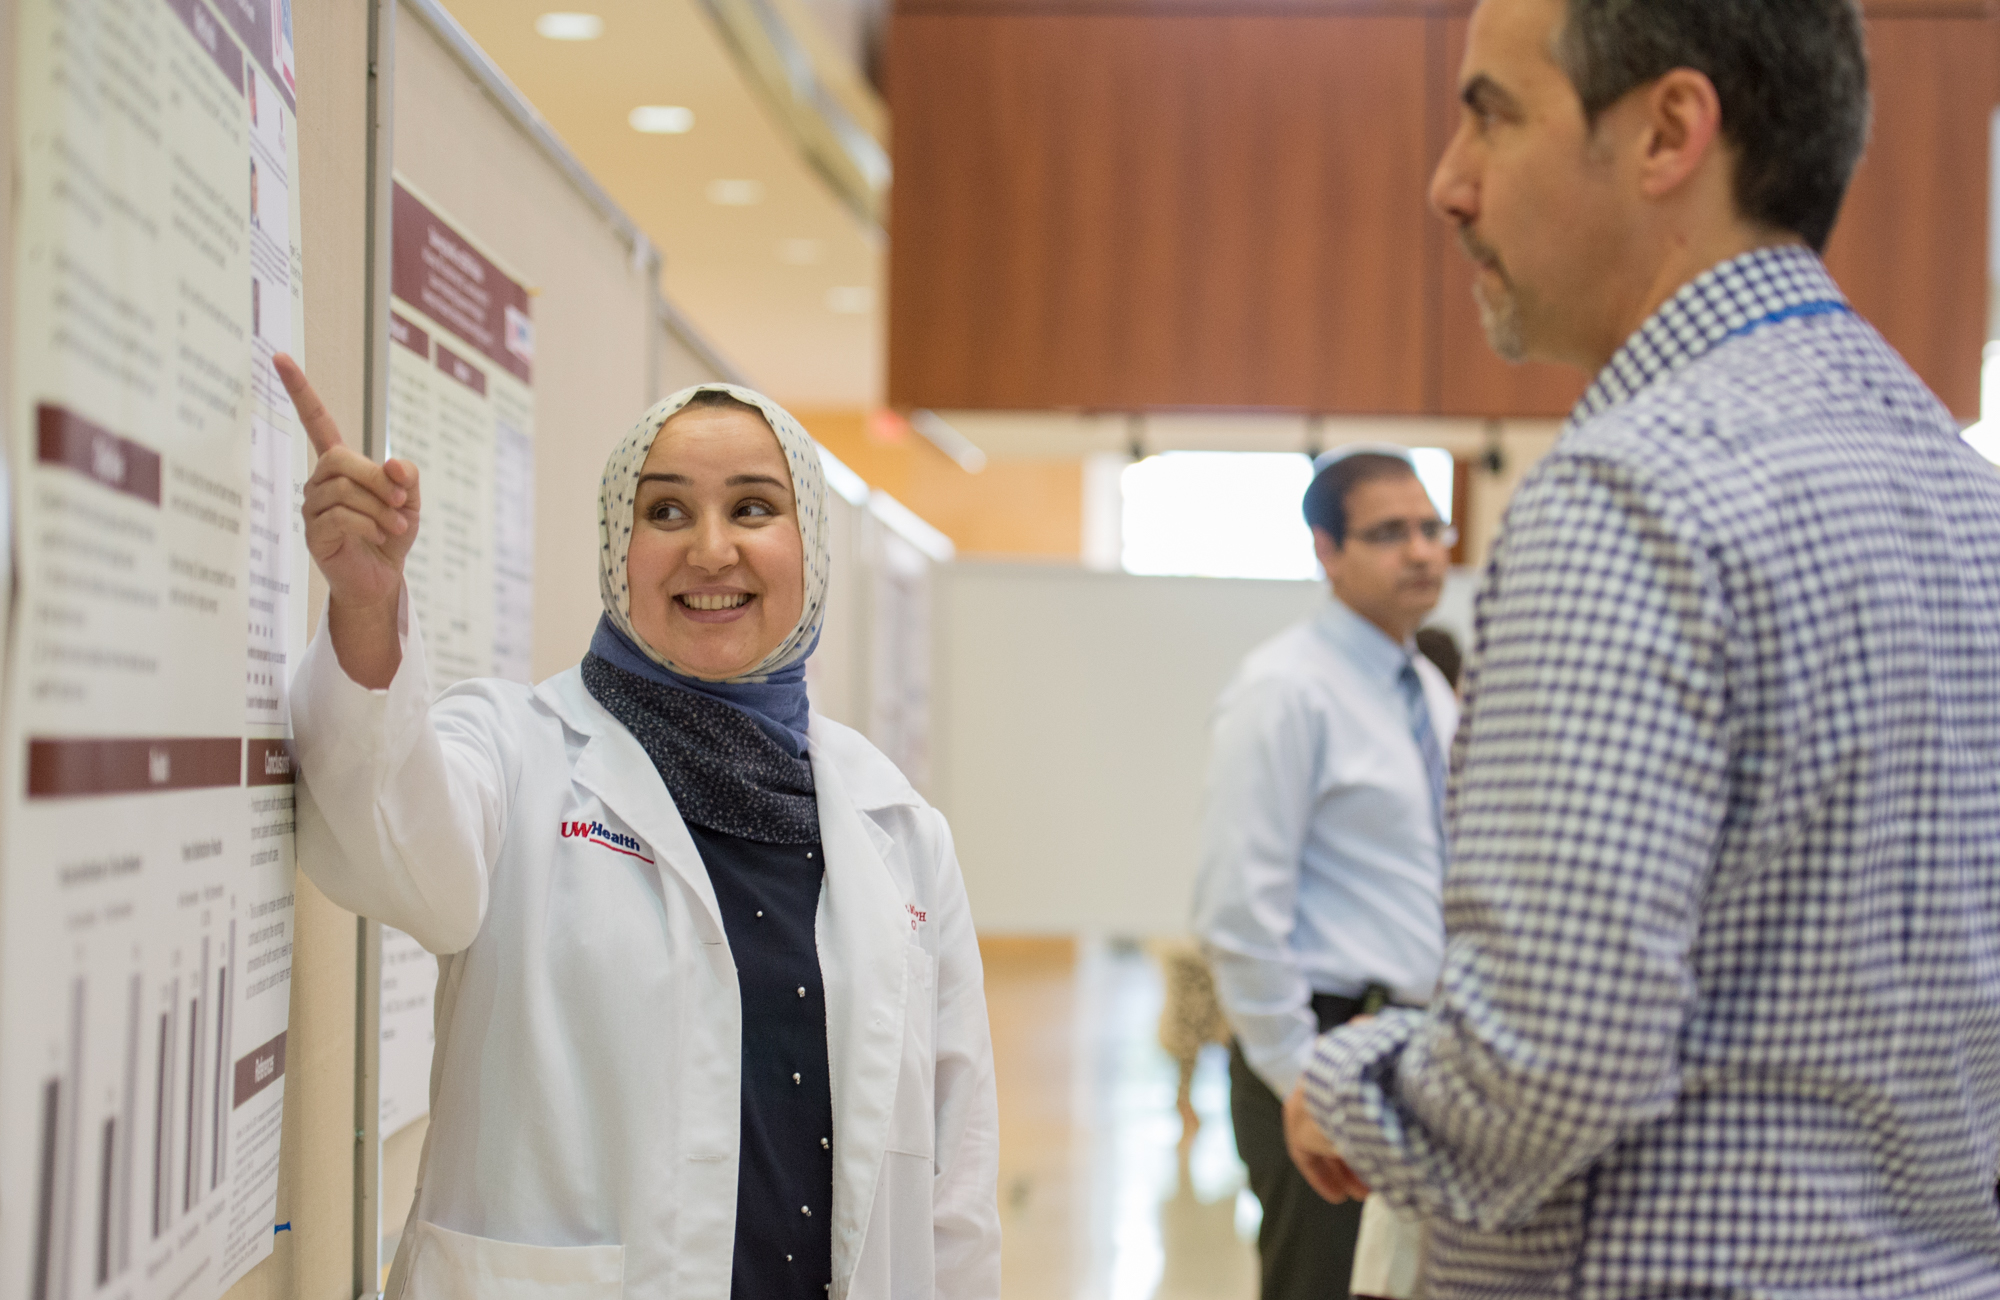 Fellowship program opportunities - quality improvement and research training